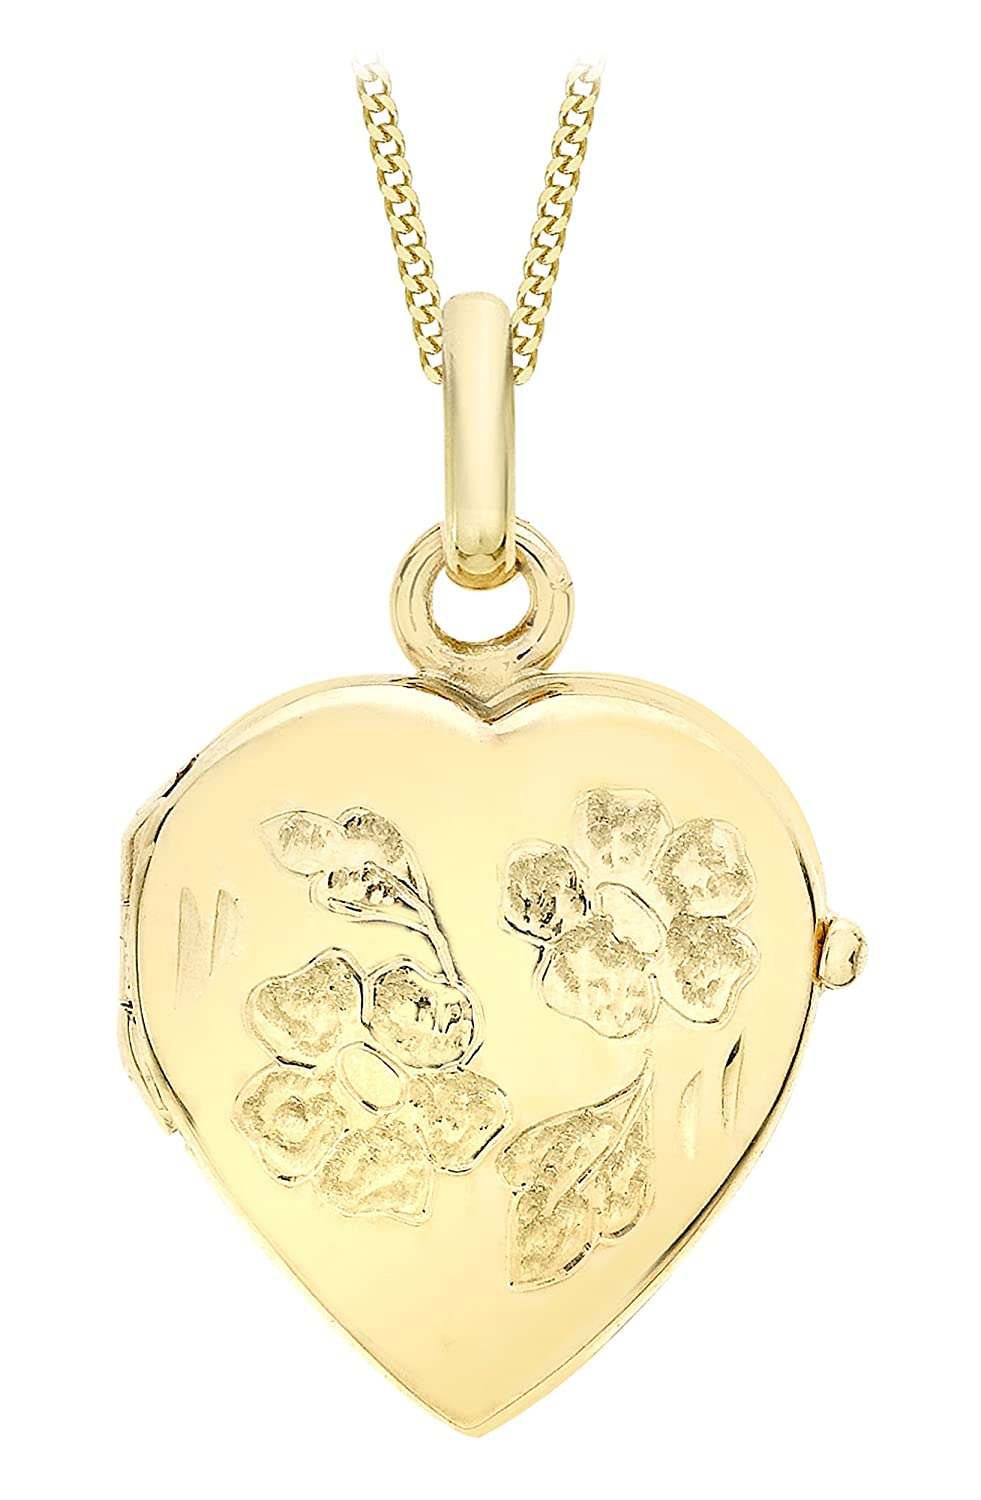 Carissima Gold Damen-Kette mit Anhänger 9ct Heart Daisy Locket Pendant on Curb Chain 375 Gelbgold 46 cm – 1.43.7274 schenken